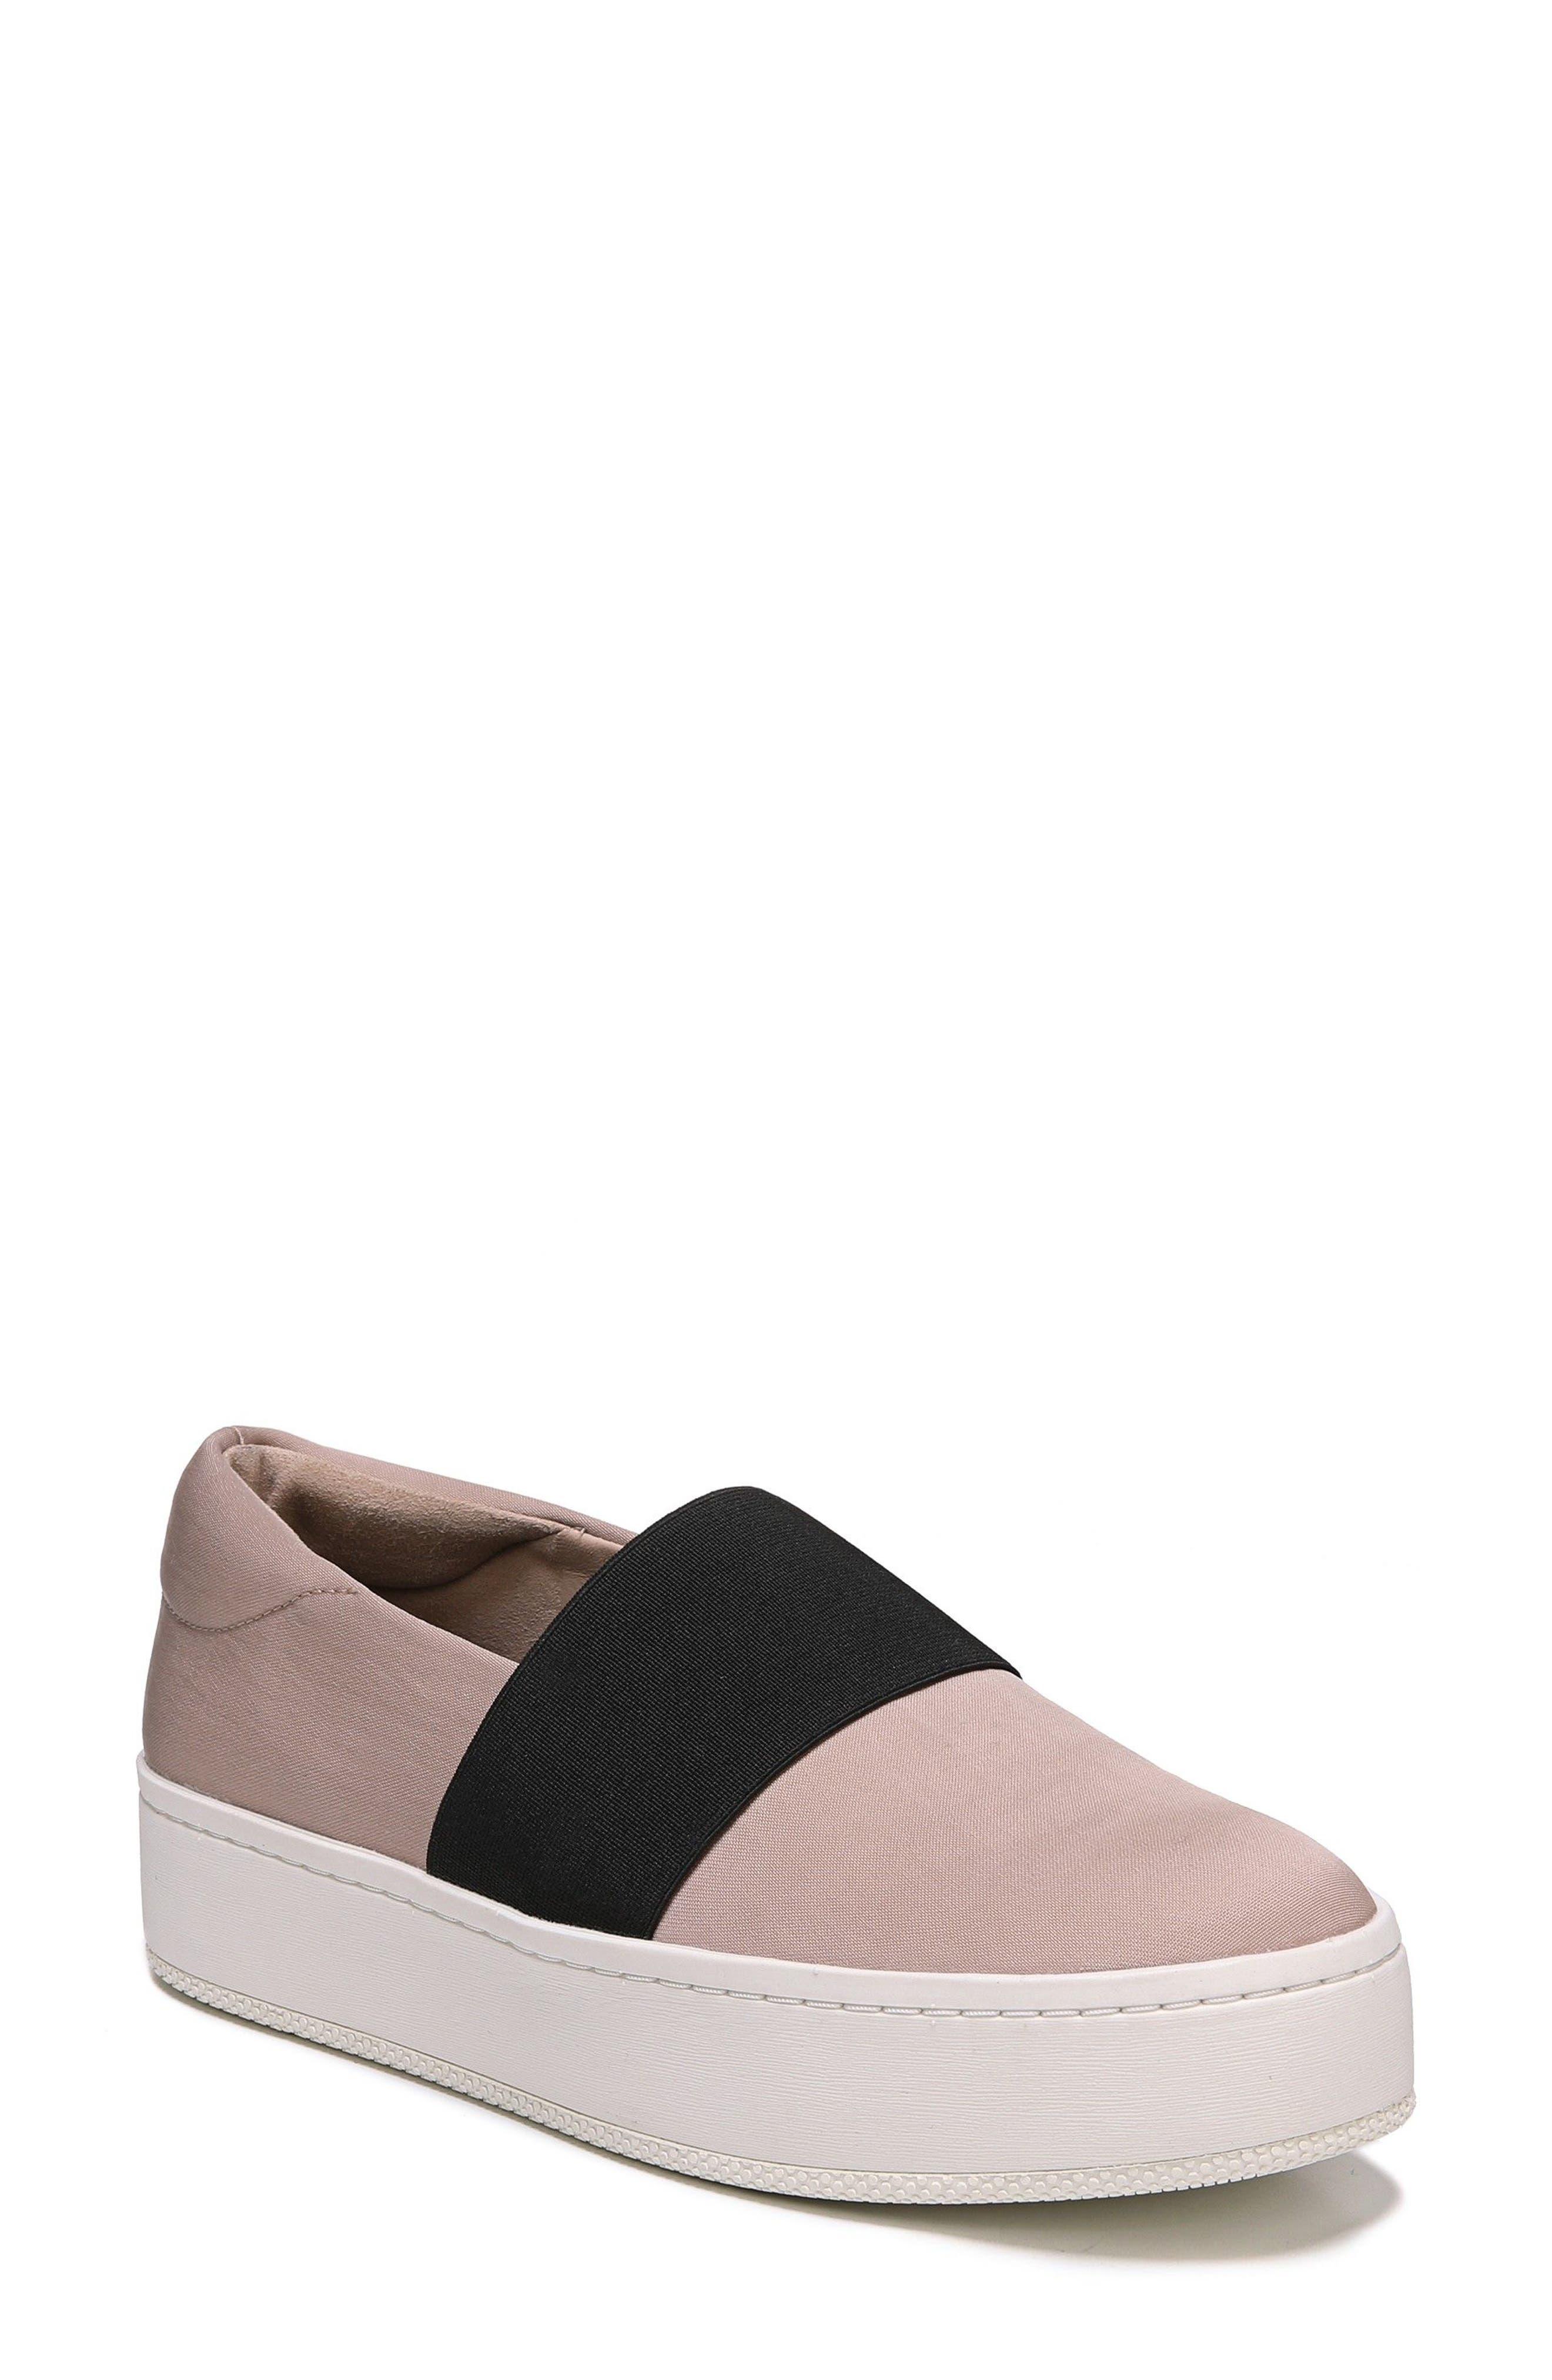 Traynor Platform Slip-On,                             Main thumbnail 1, color,                             Blush/ Black Fabric